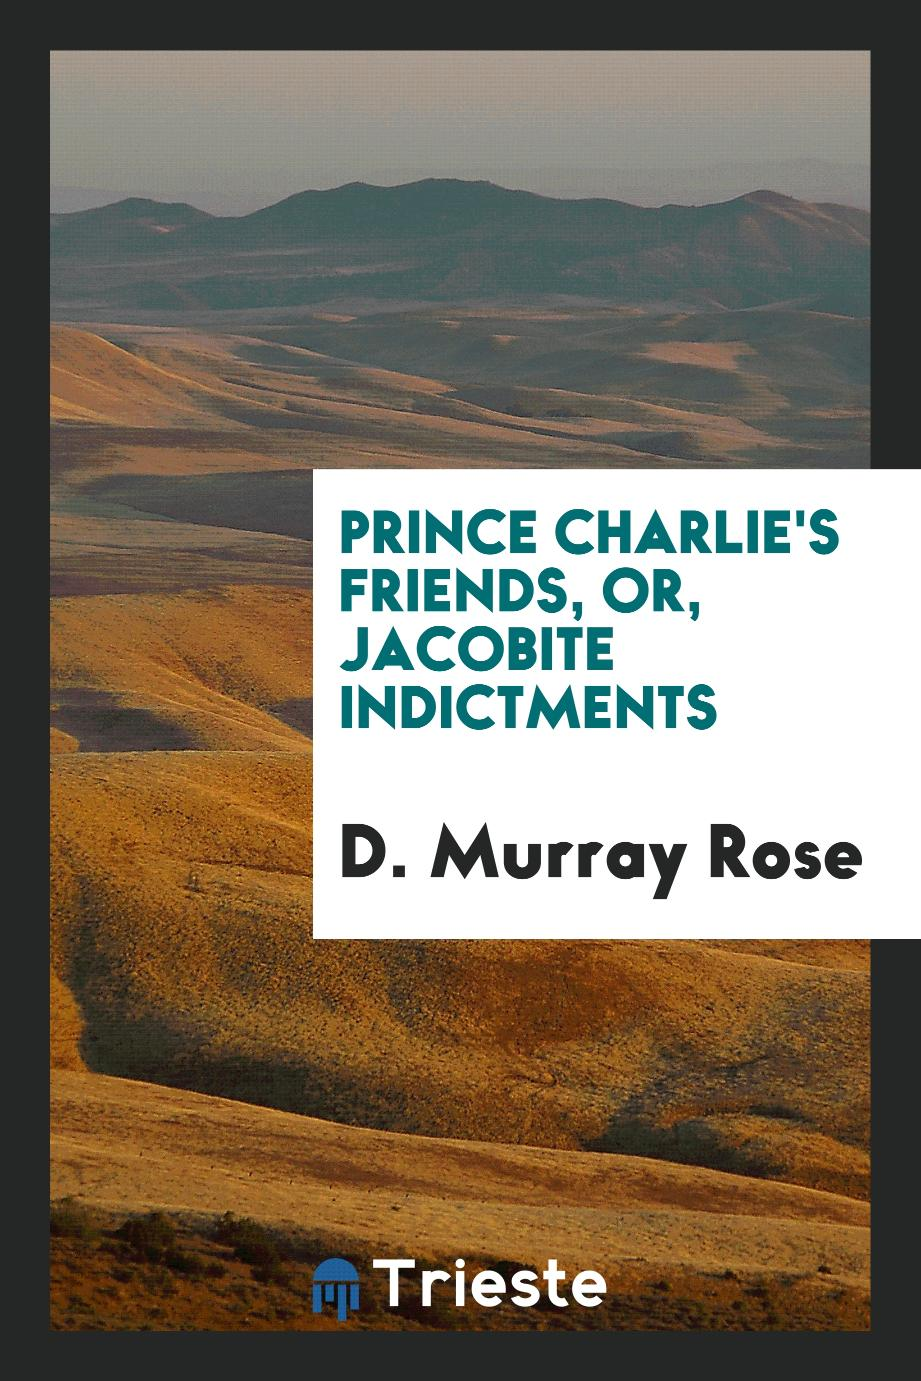 Prince Charlie's Friends, Or, Jacobite Indictments